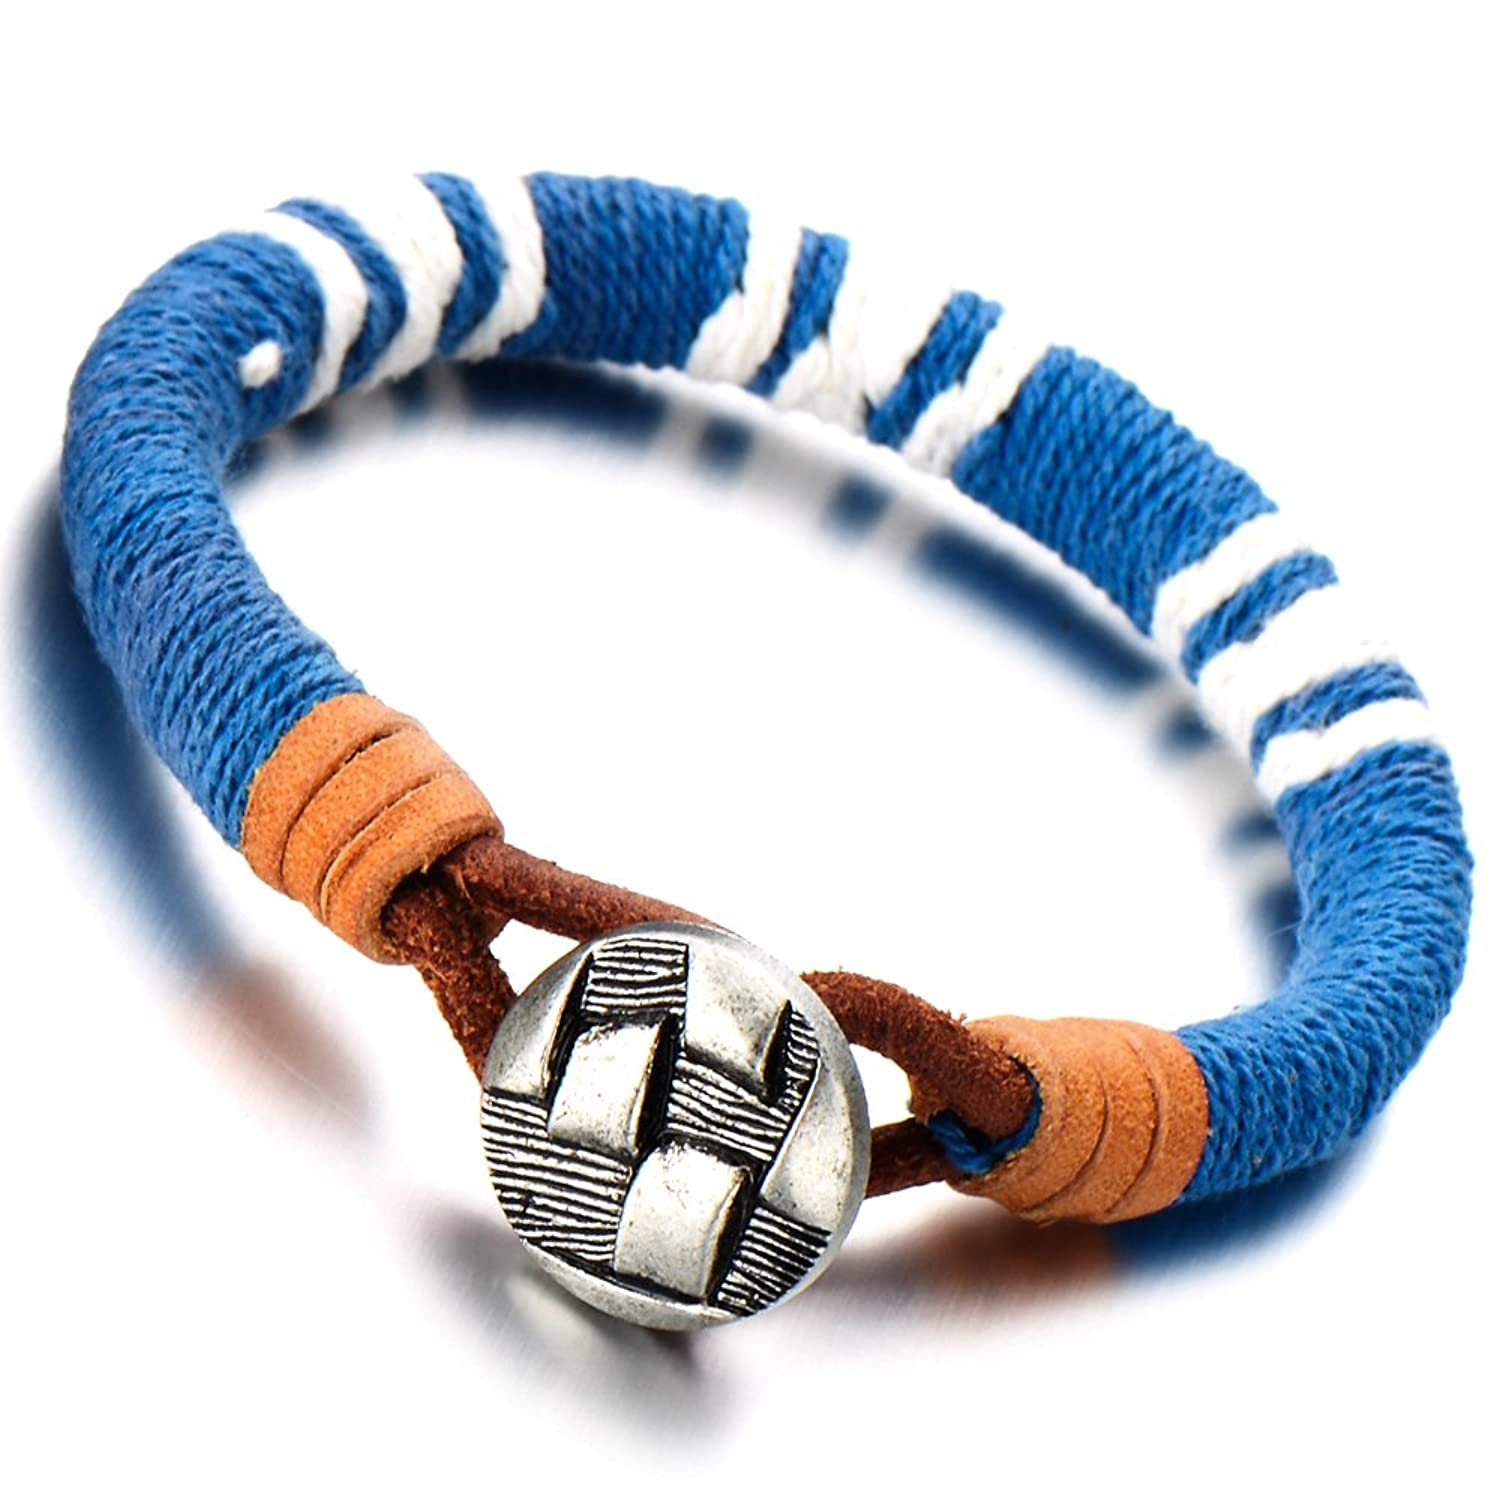 Unisex Braided Bracelet Cuff Bangle for Man and Women with Light Blue Cotton